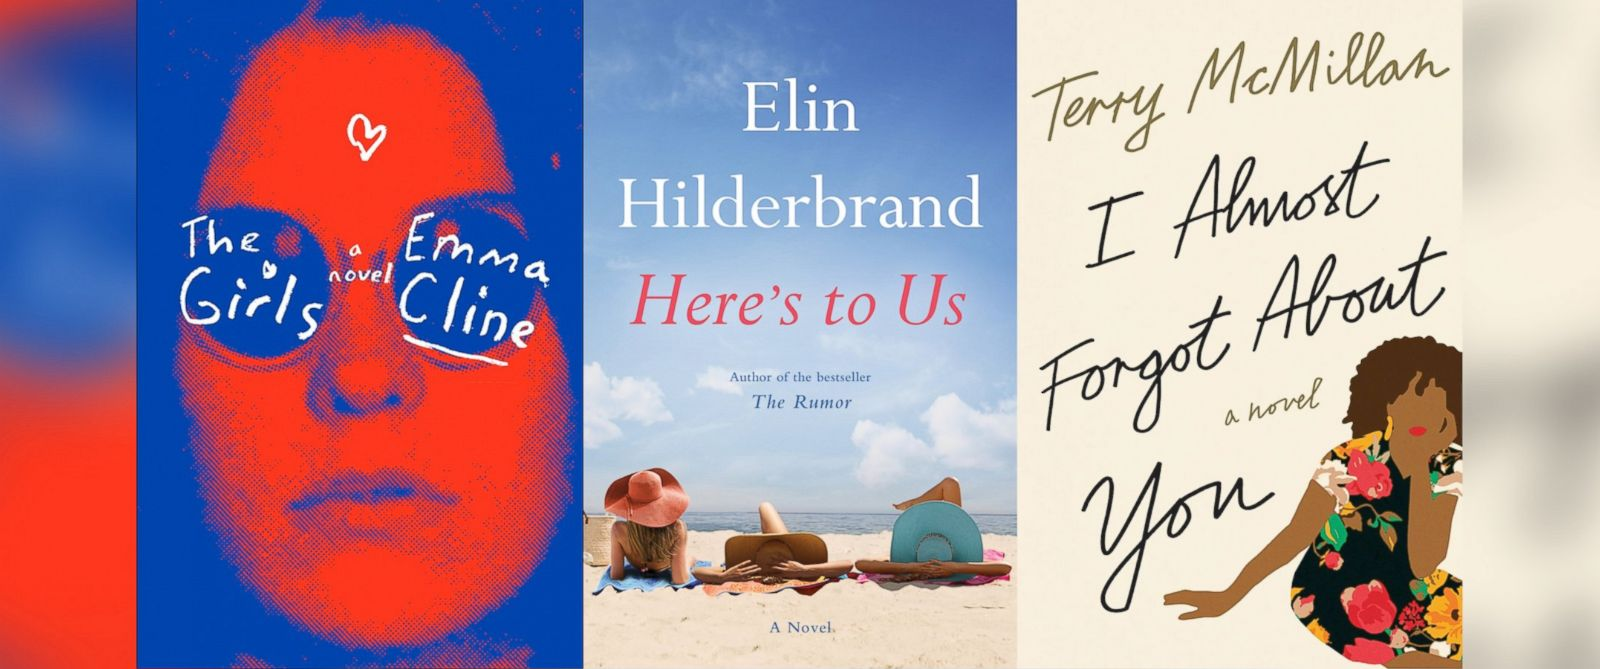 """PHOTO: """"The Girls,"""" by Emma Cline, """"Heres to Us,"""" by Elin Hilderbrand, and """"I Almost Forgot About You,"""" by Terry McMillan are summer must-reads."""